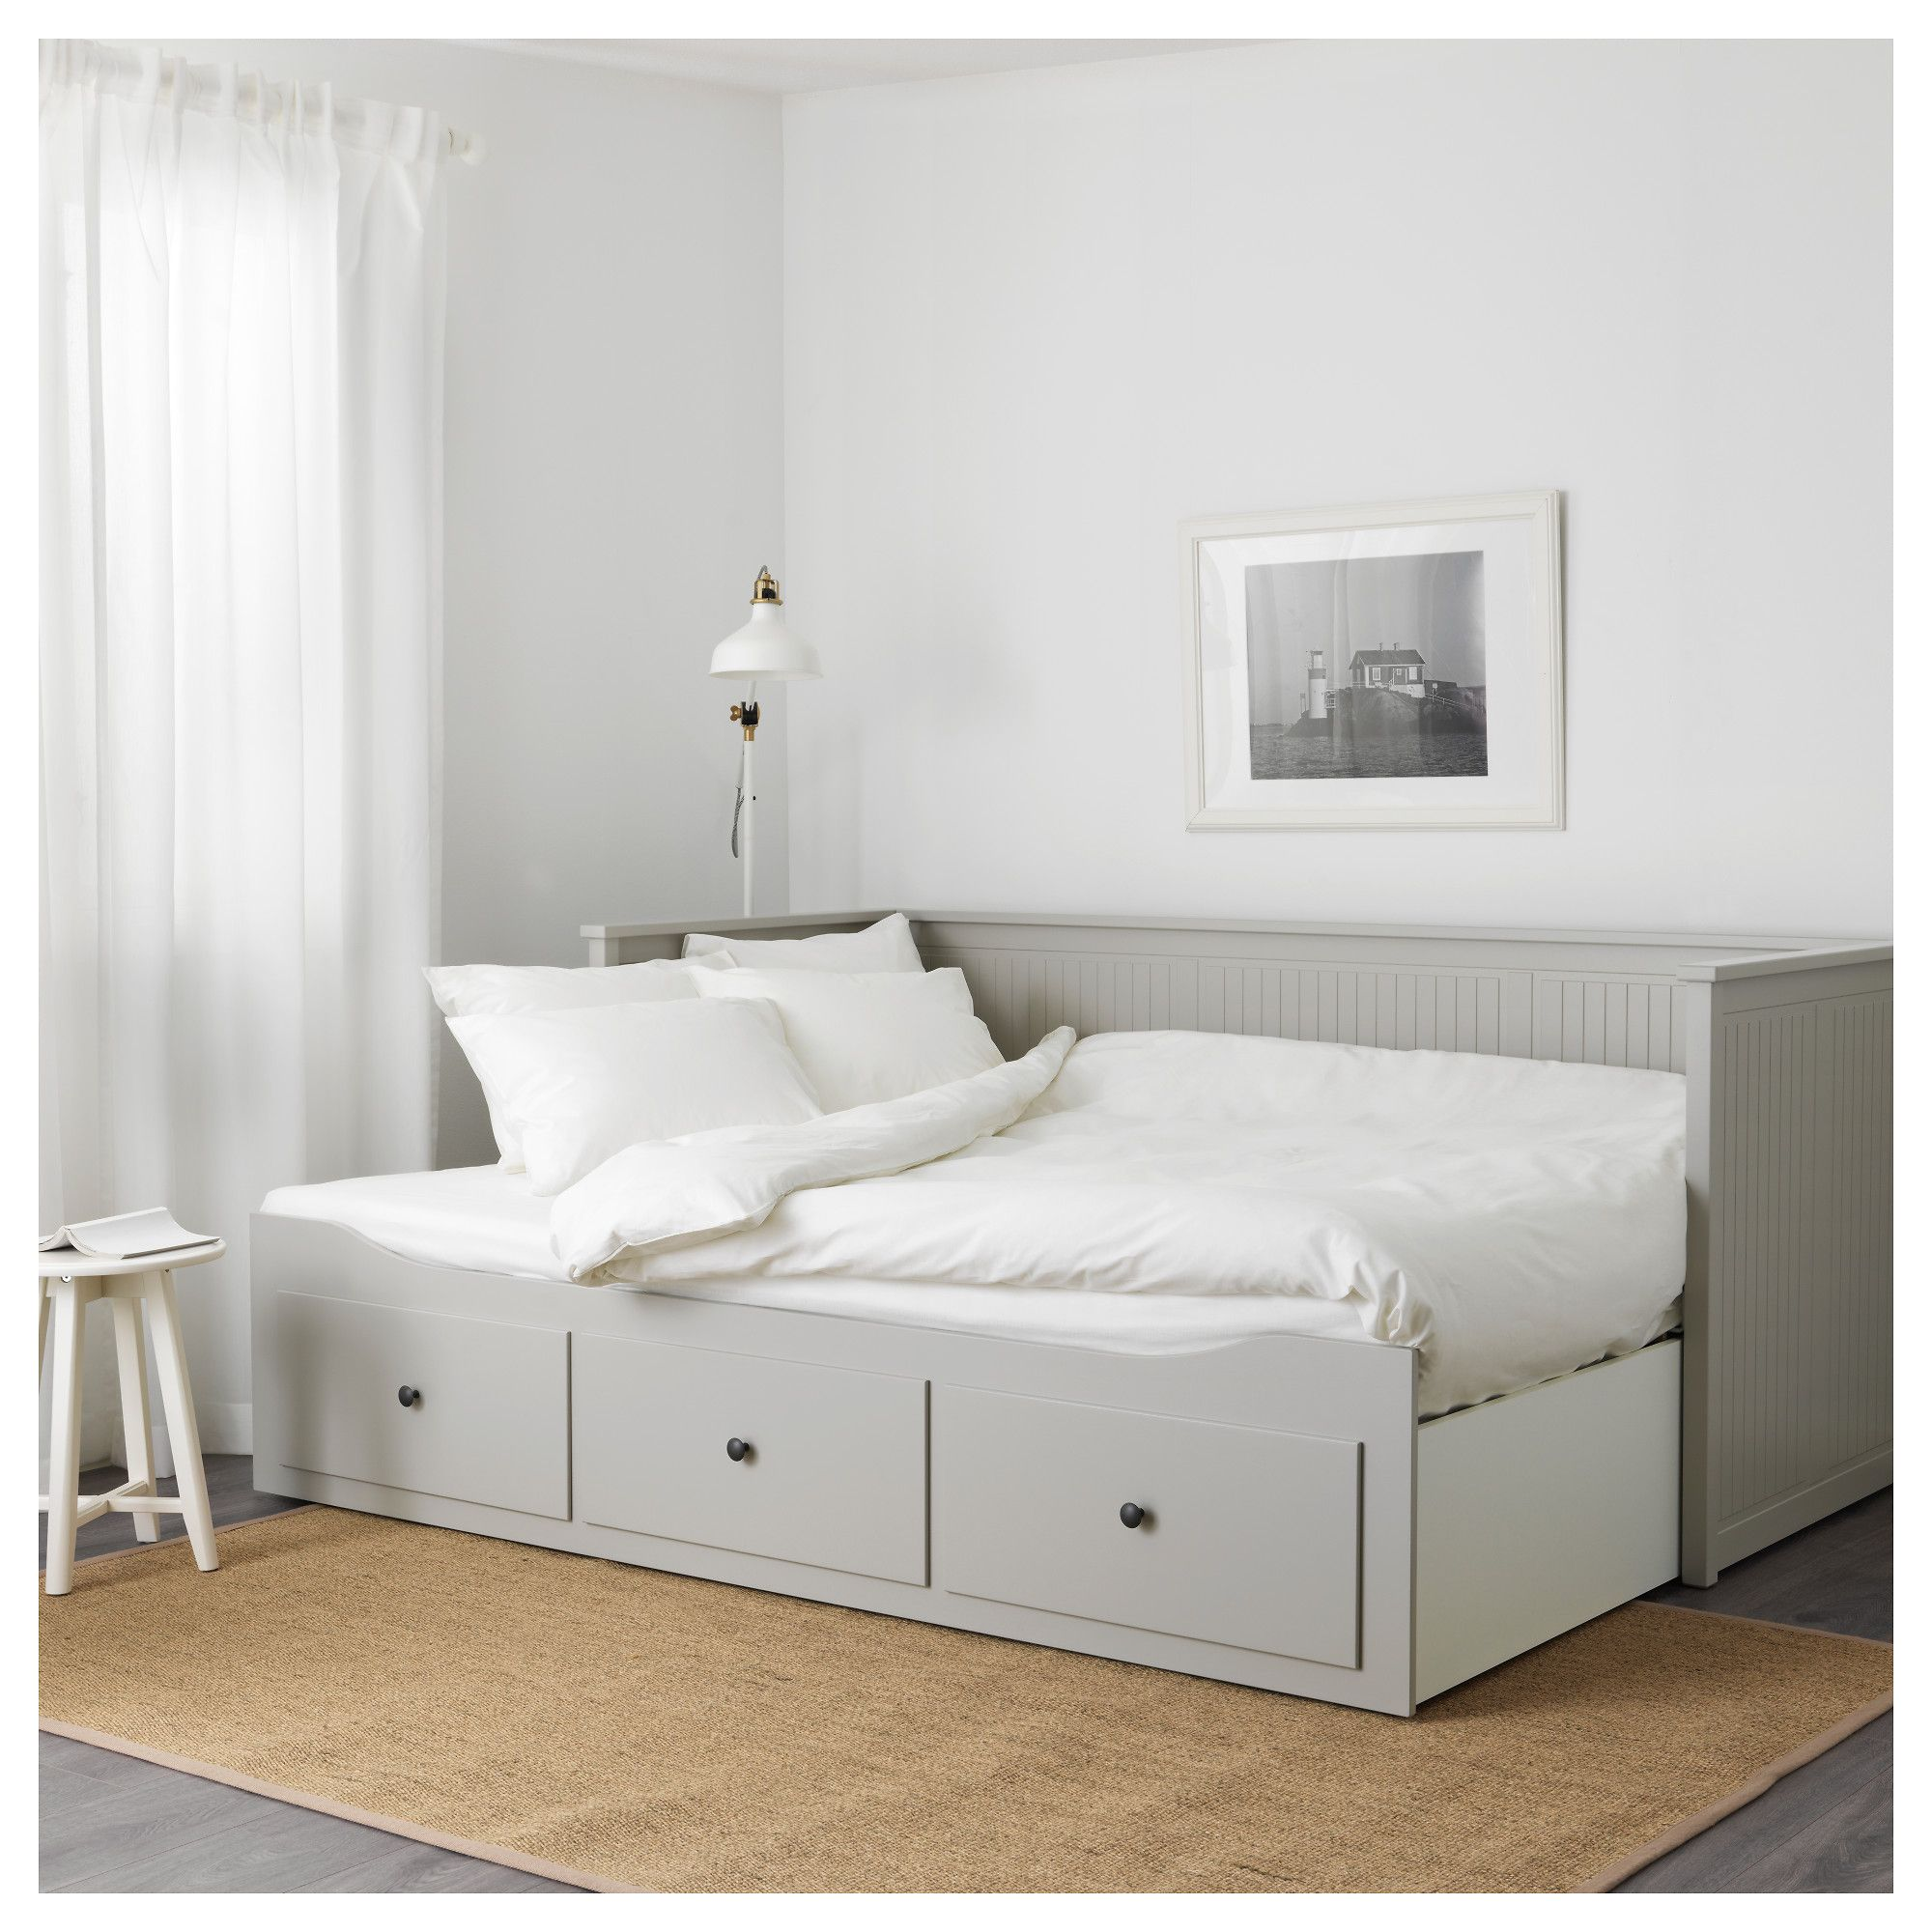 Ikea Bettbank Ikea Hemnes Day Bed Frame With 3 Drawers Slaapkamers